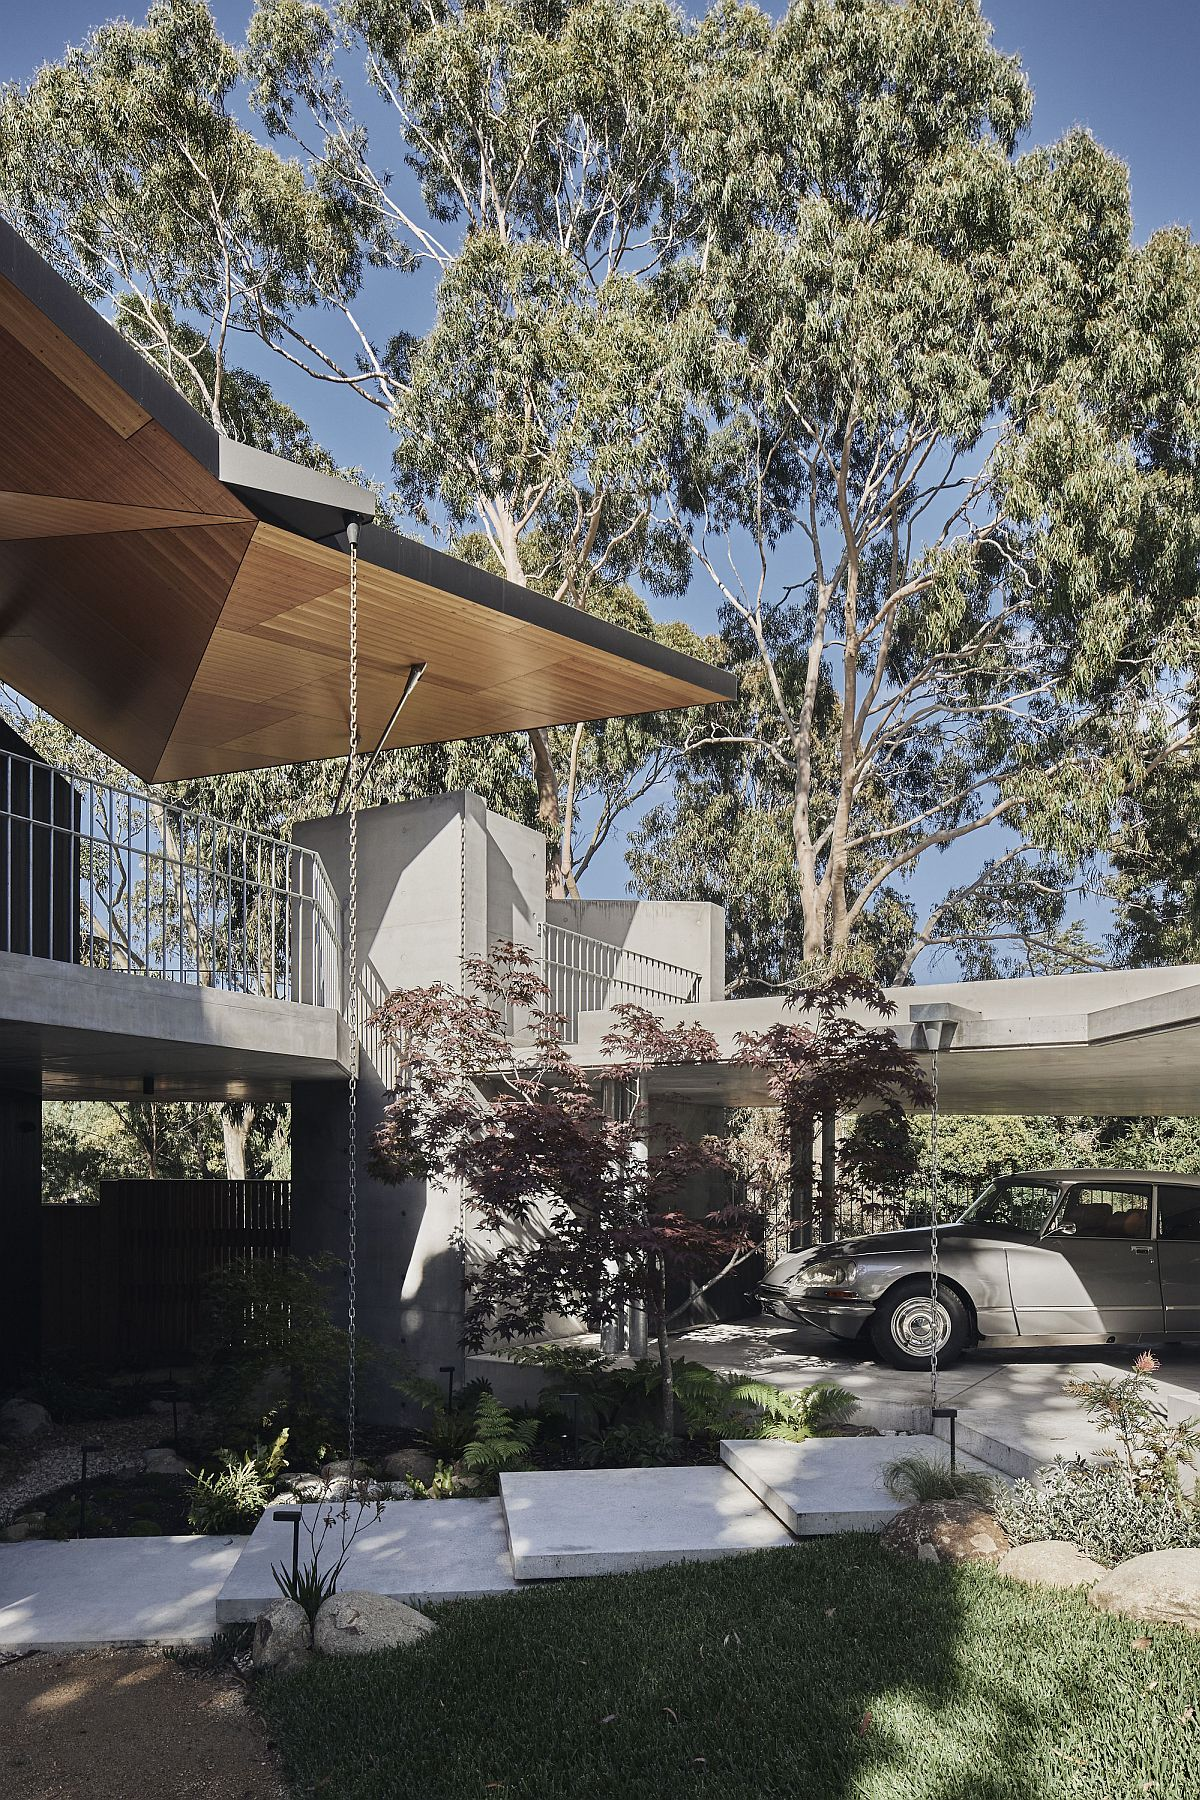 Green outdoors and entry of the unique Aussie home that feels different